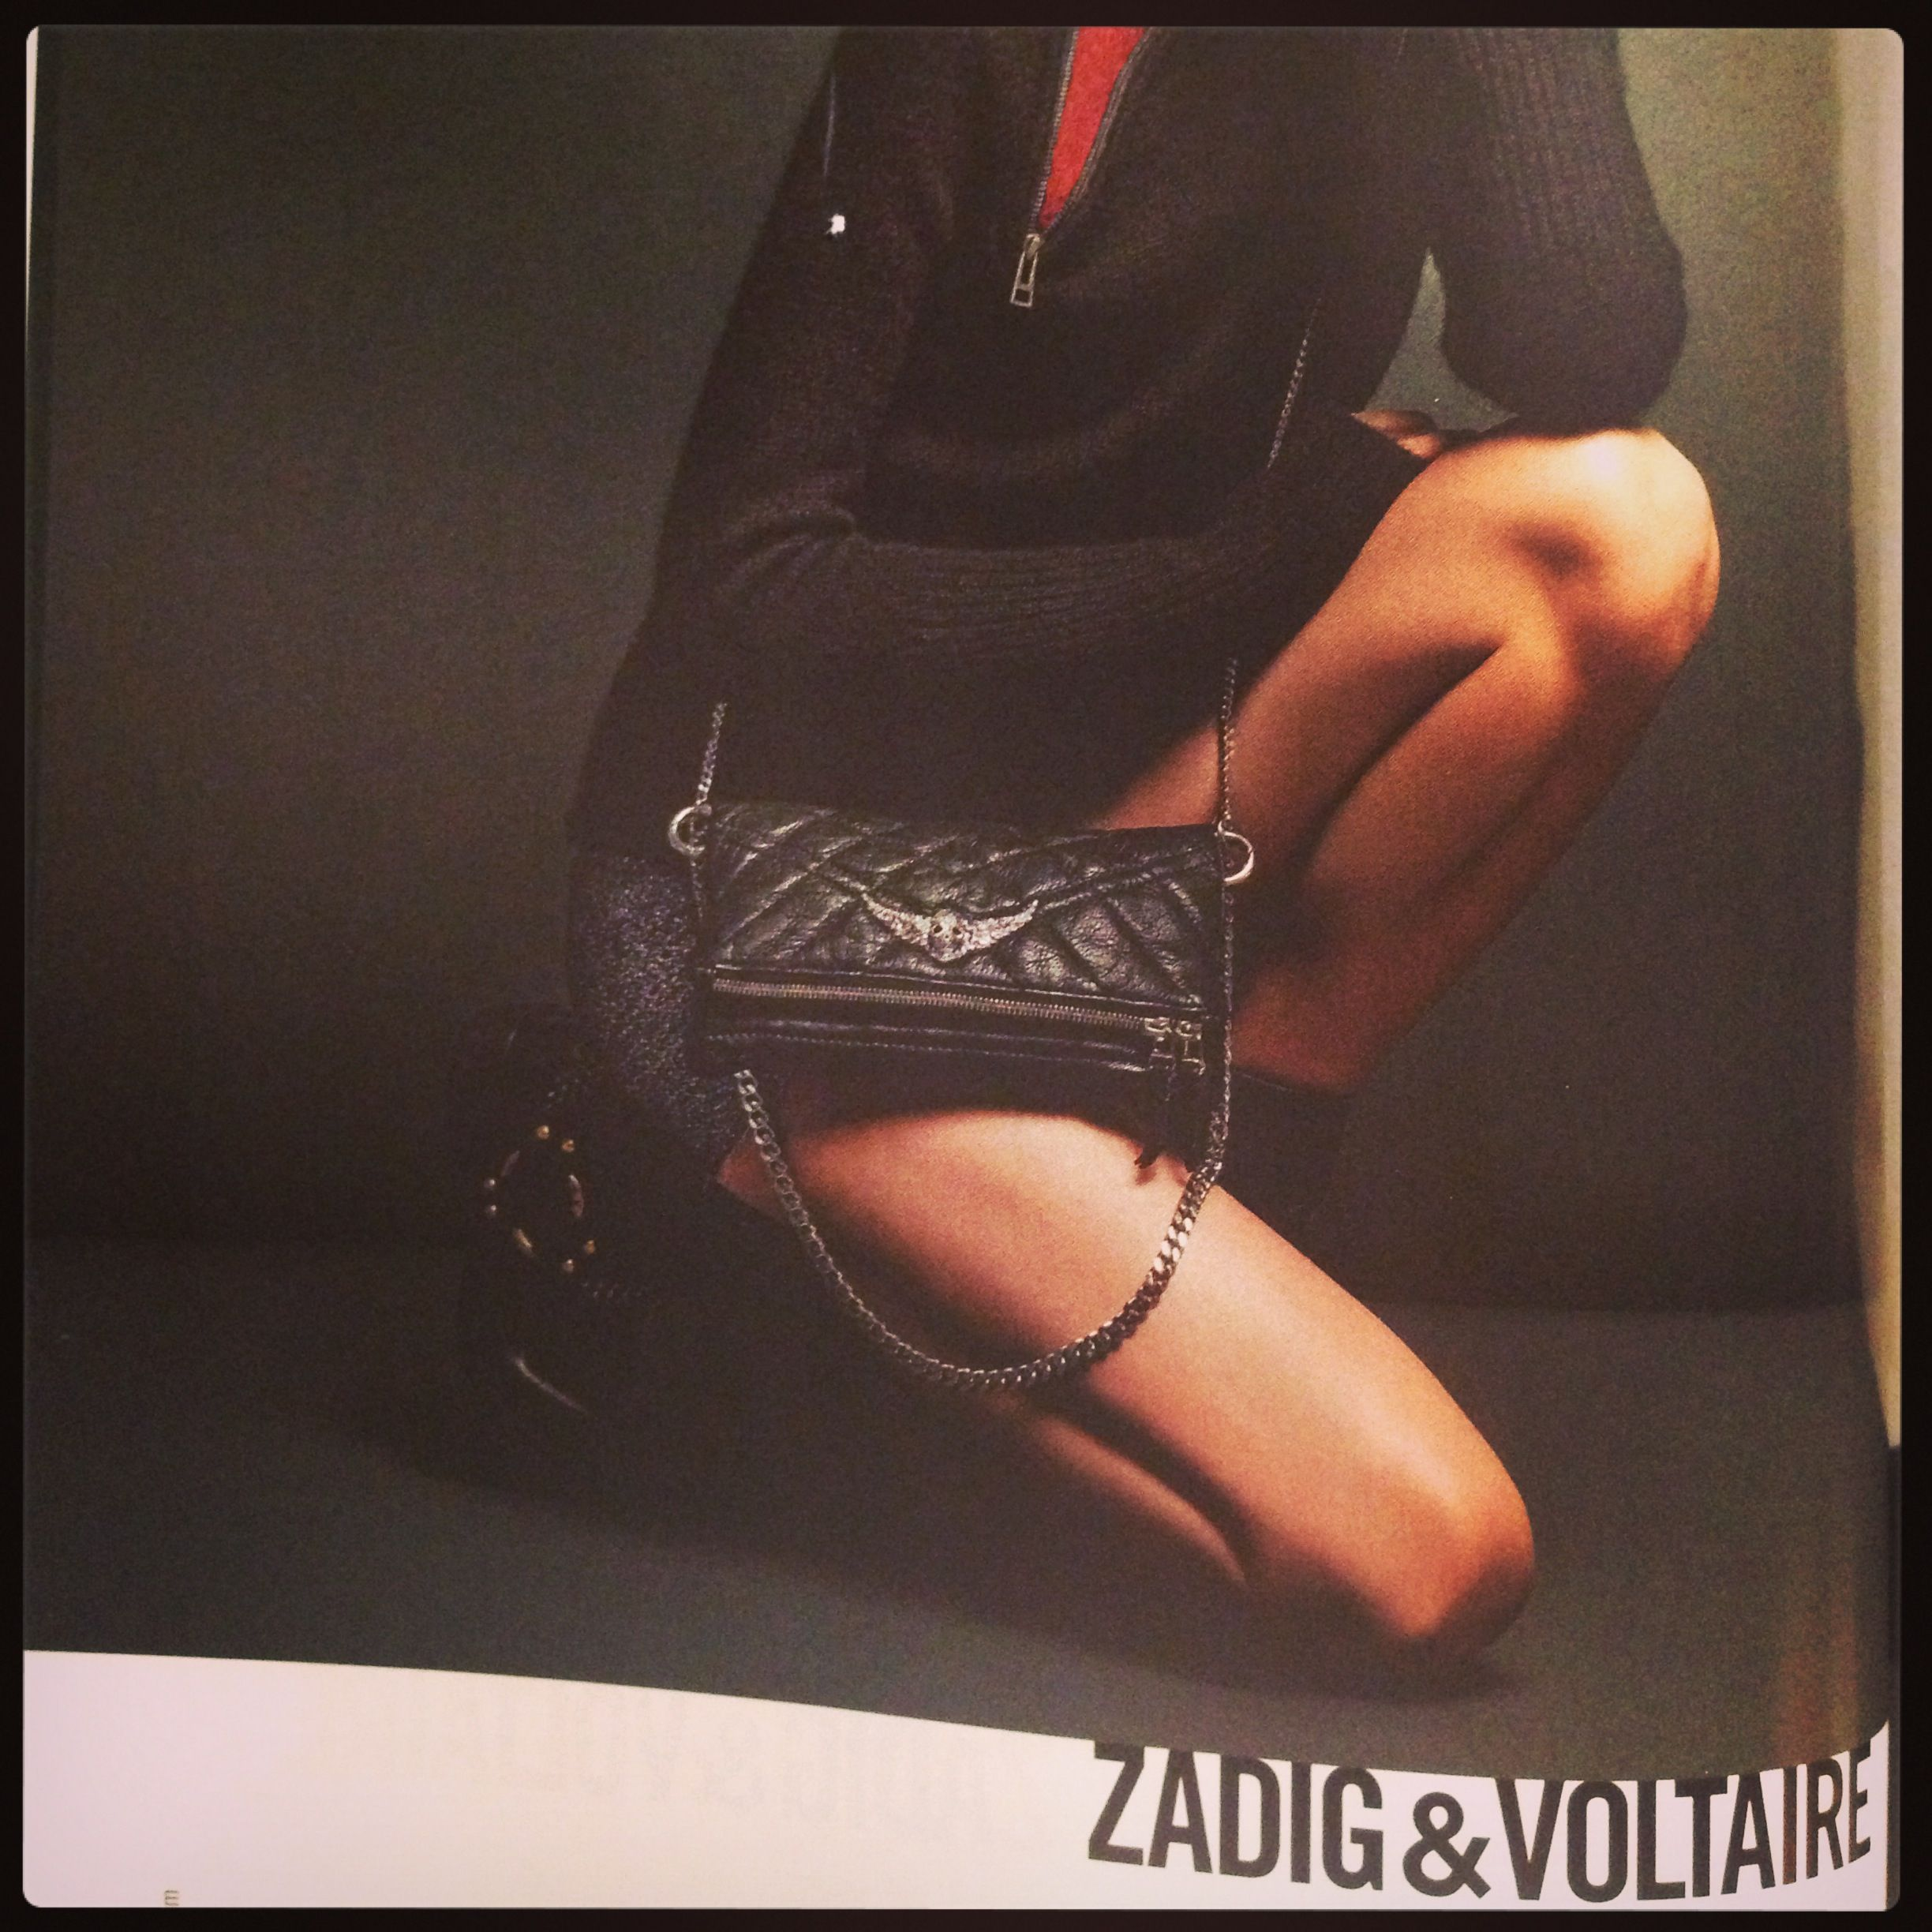 Obsession zadig&voltaire